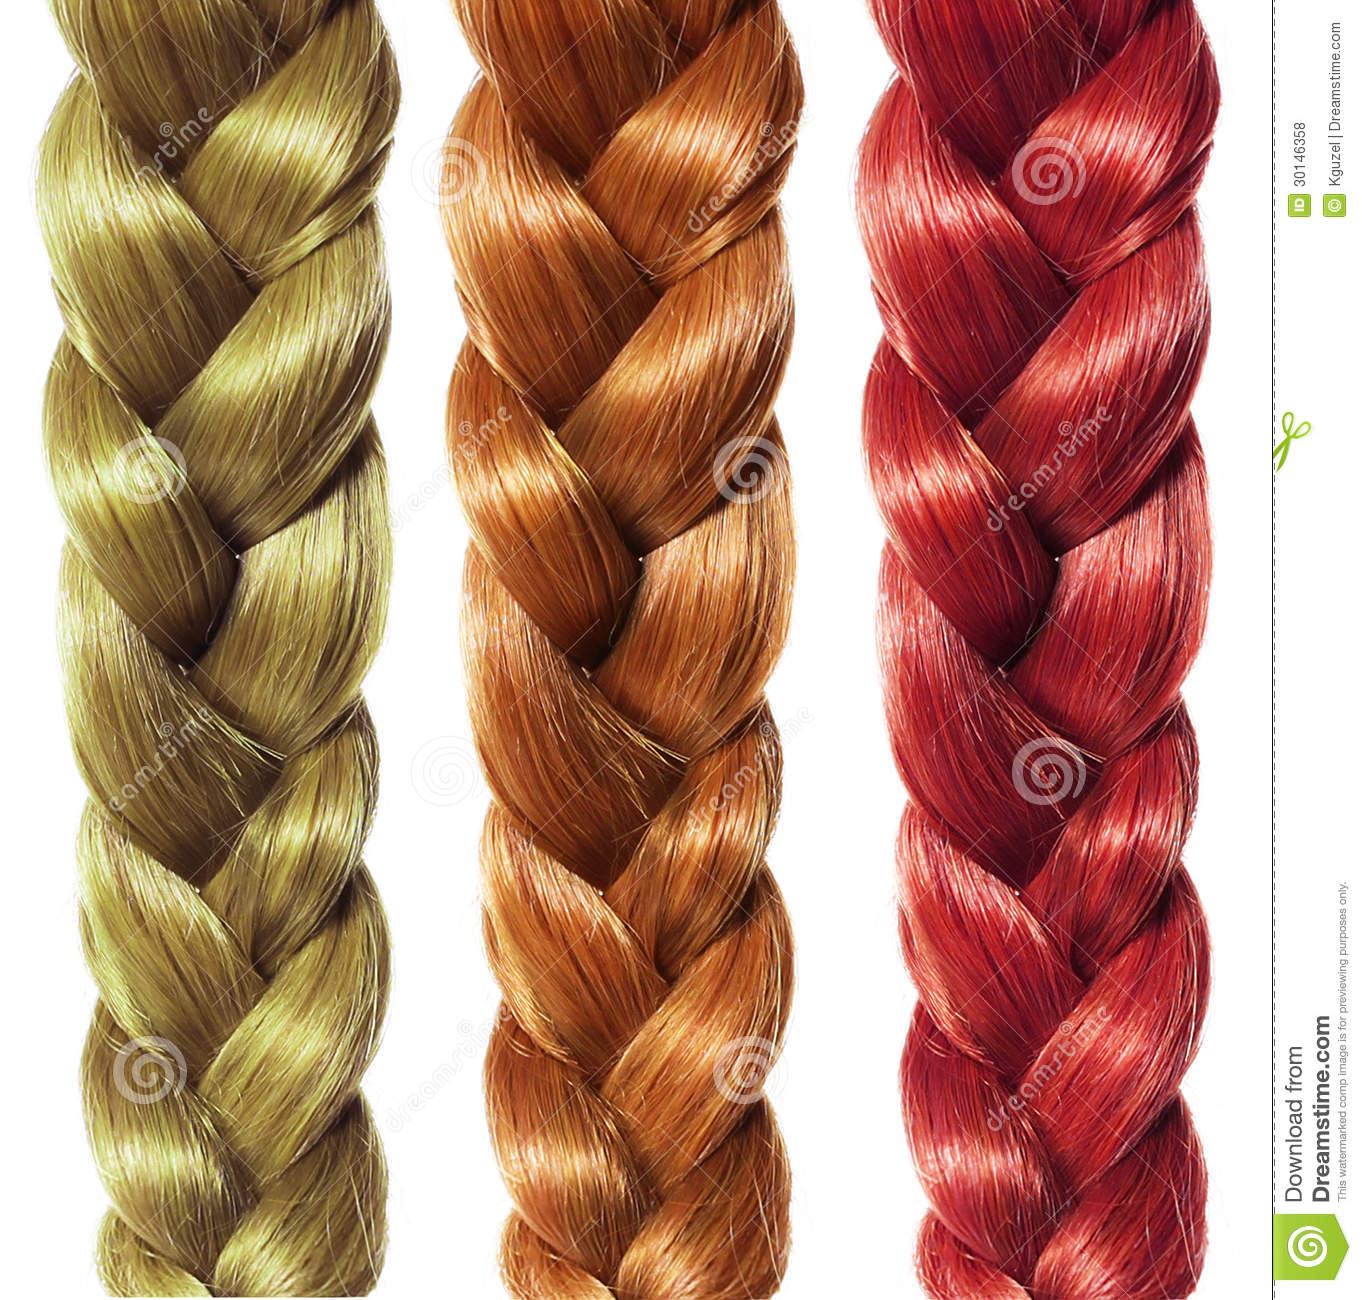 Braid Hair Three Colored Plaits Isolated Hair Care